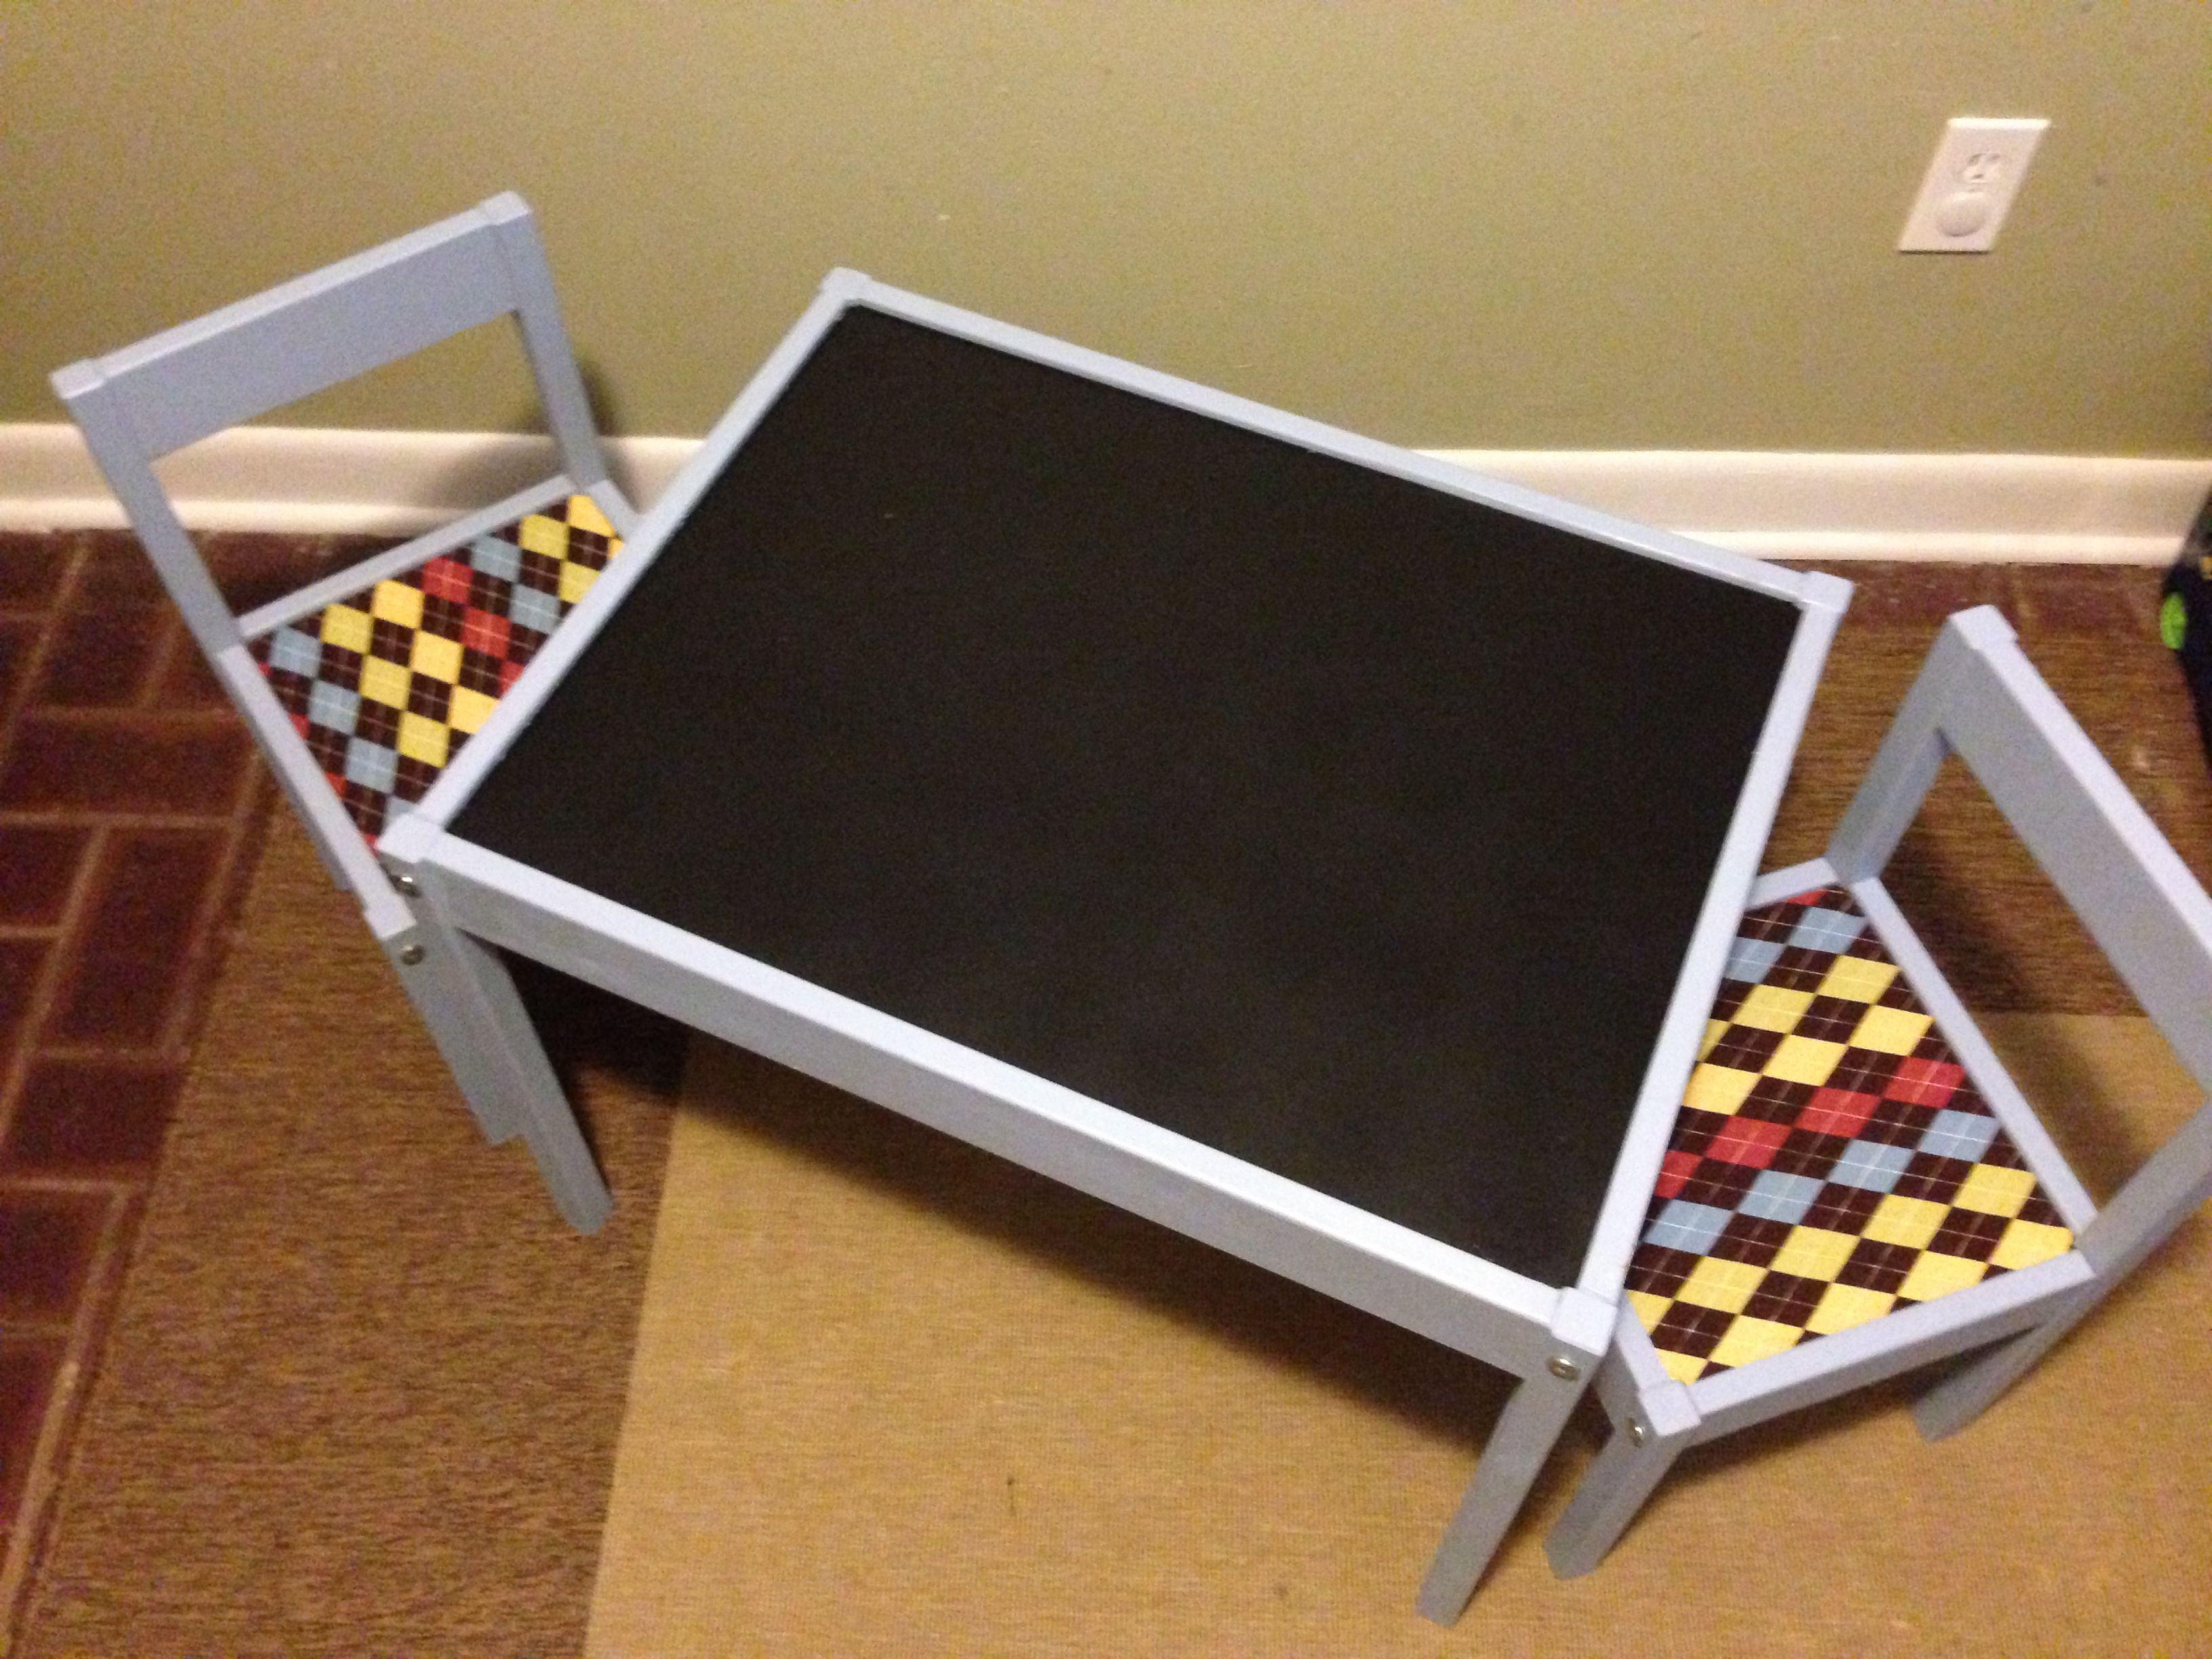 Ikea Staffelei Upcycled Ikea Lätt Kids Table Chalkboard Paint On Top